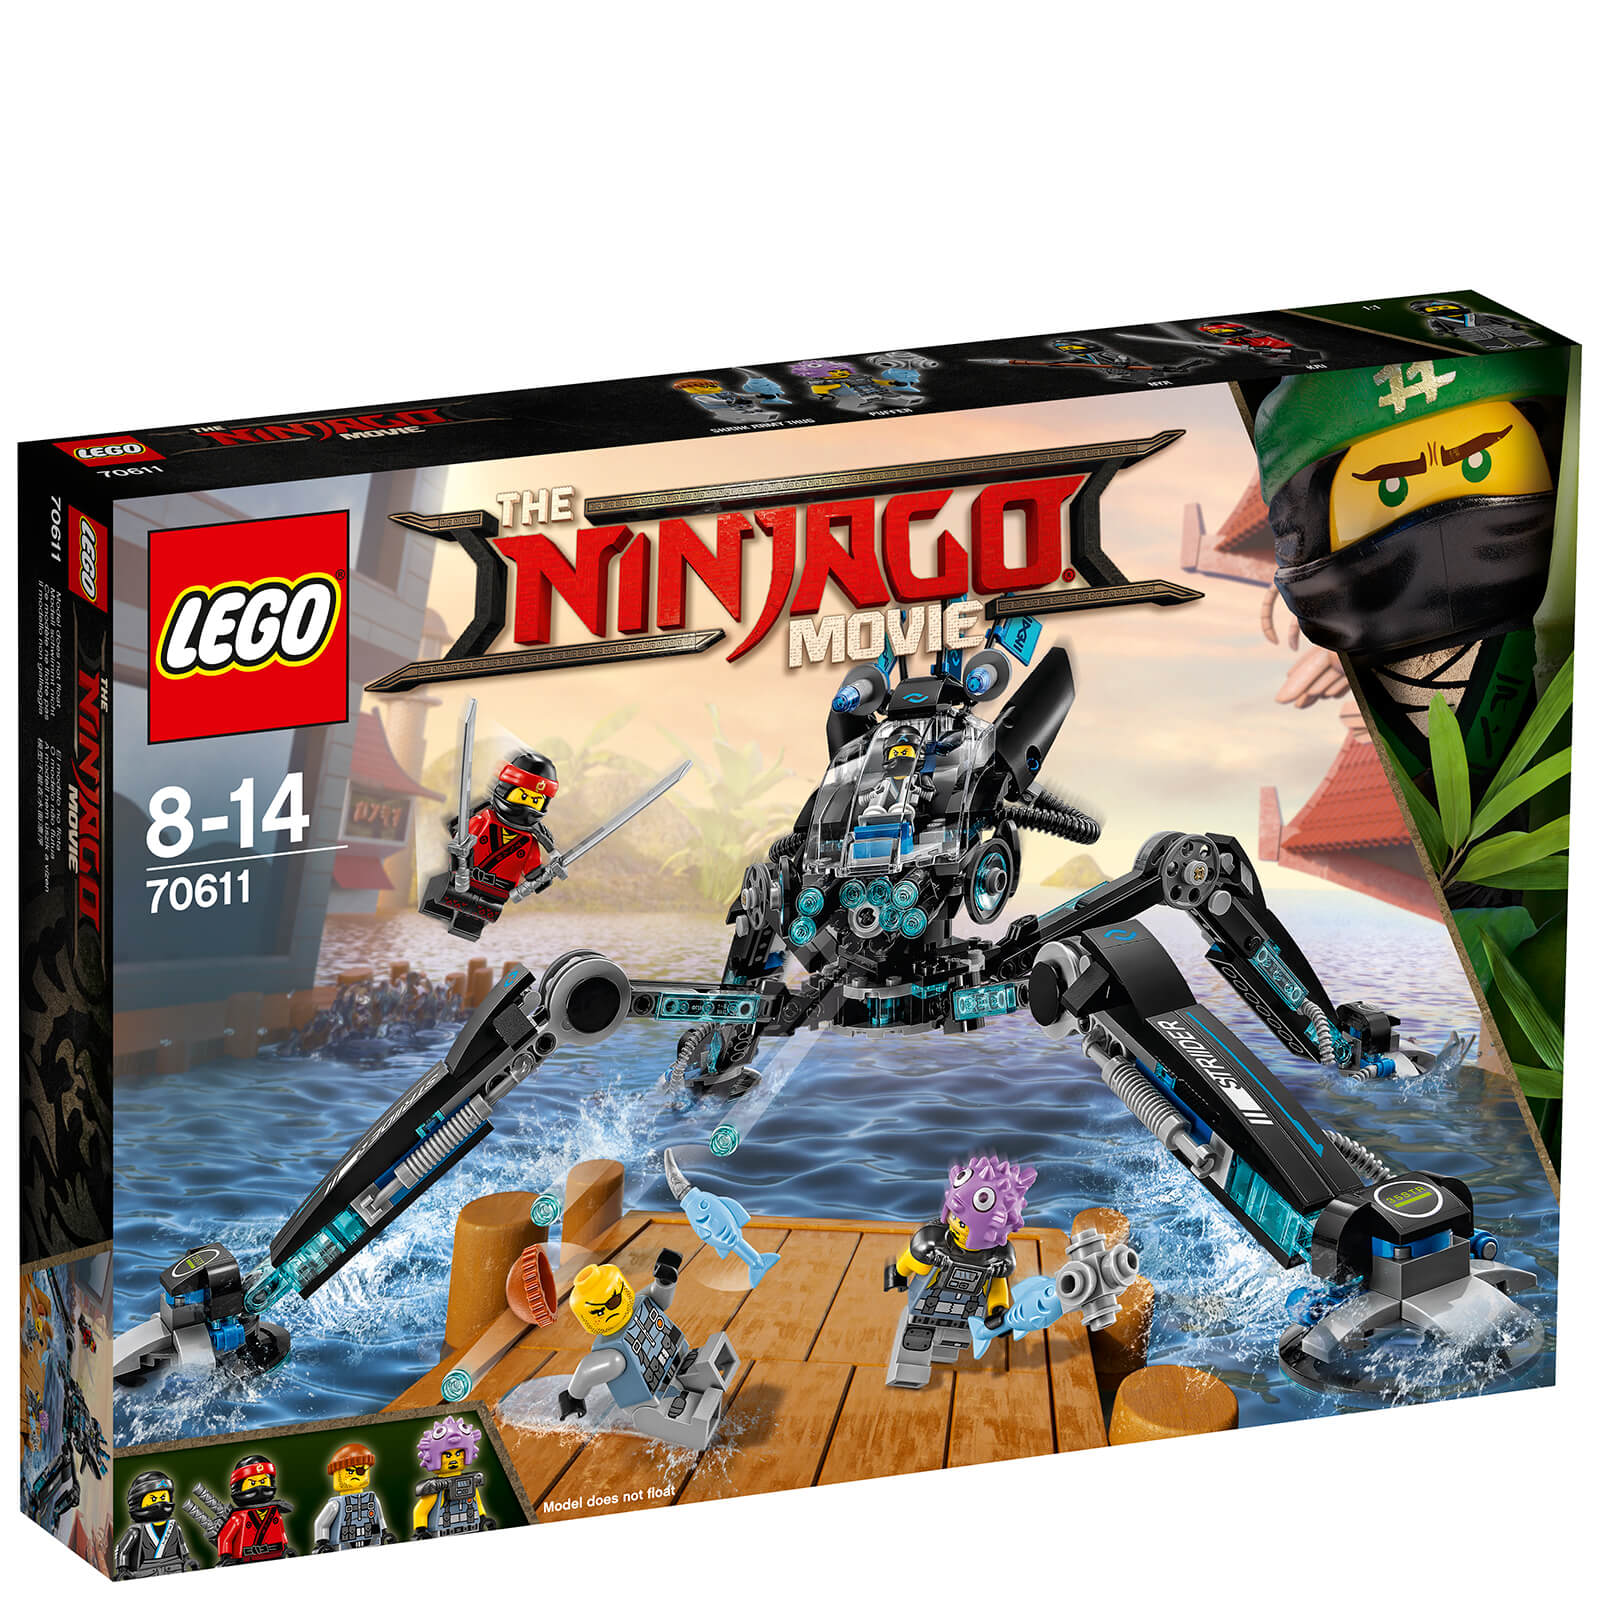 The LEGO Ninjago Movie: L